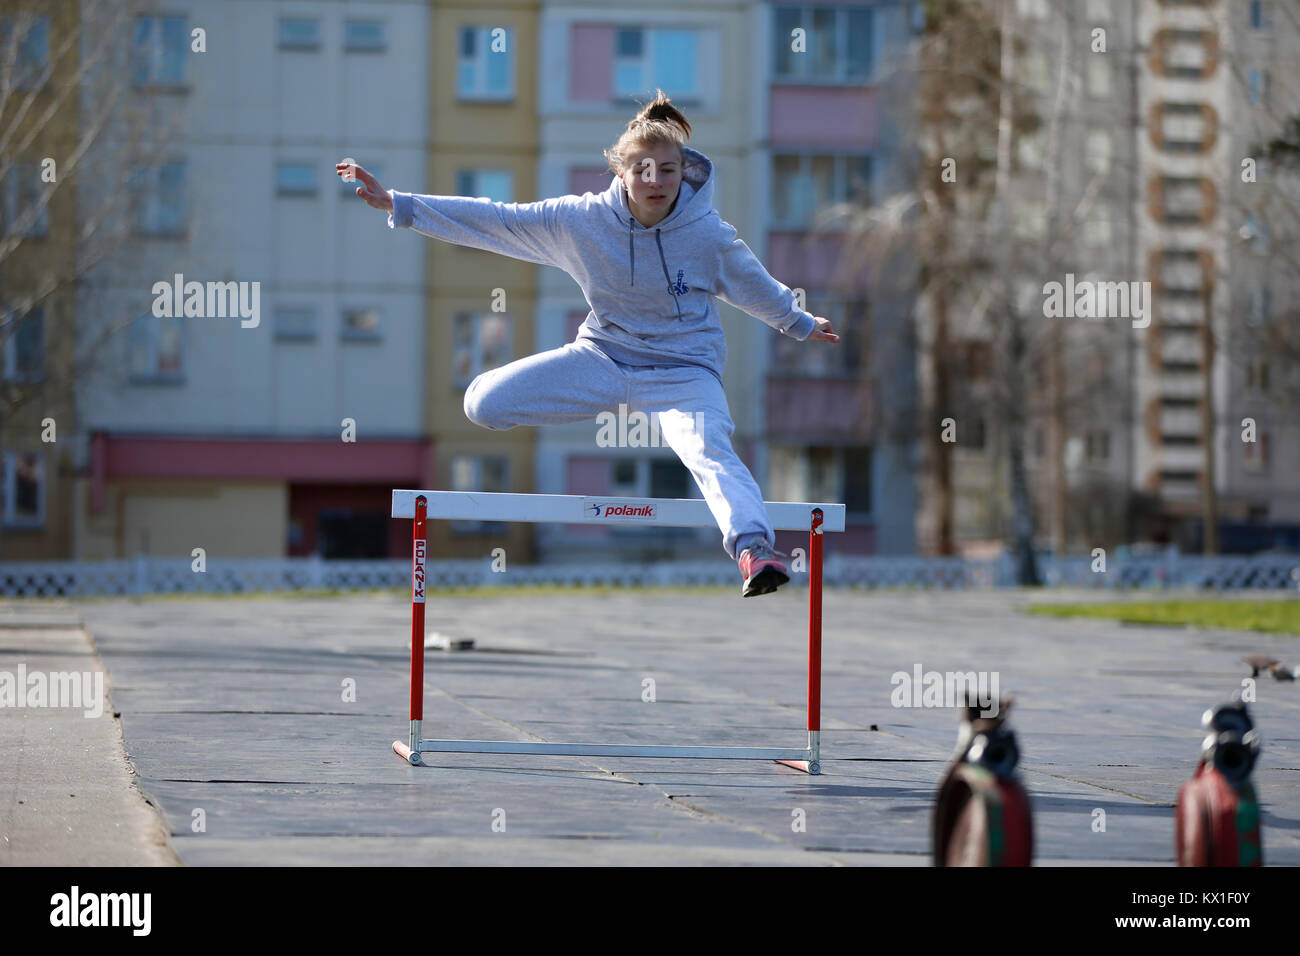 Belarus, Gomel, 21 April 2017. Open lesson on fire fighting. The athlete jumps over the barrier.Physical education - Stock Image